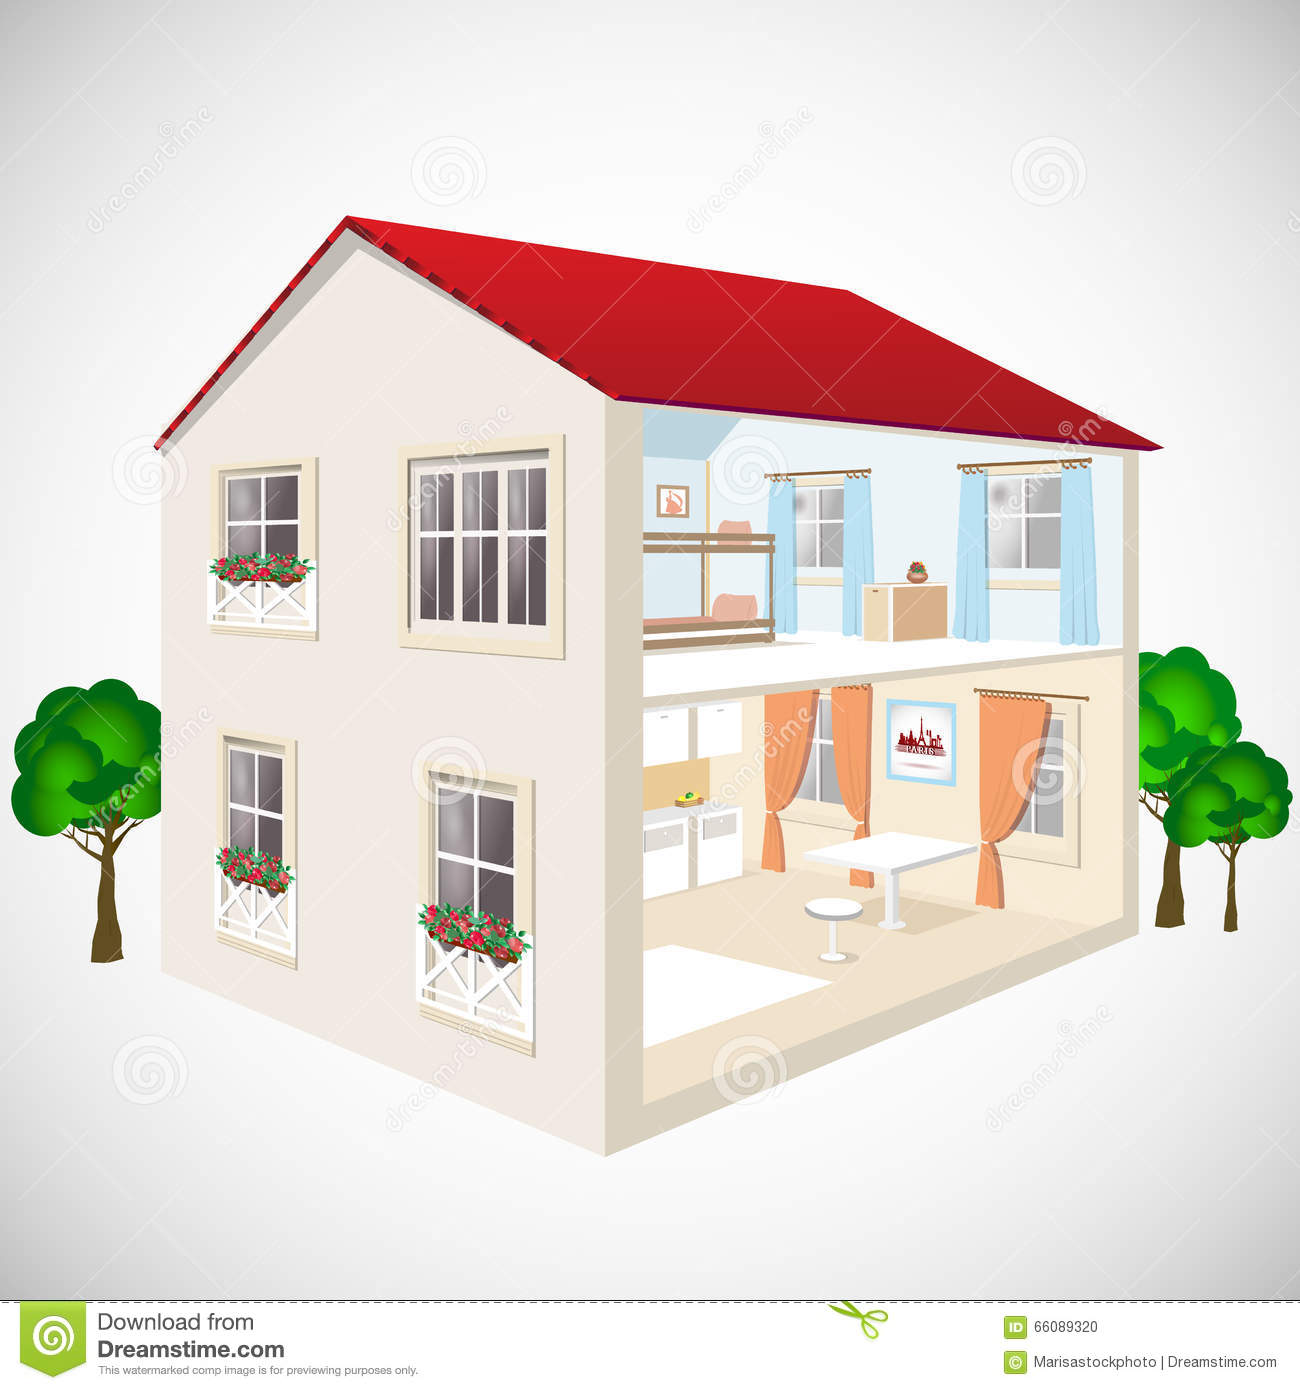 Building flat 3d web isometric concept vector exterior for Build a 3d room online free